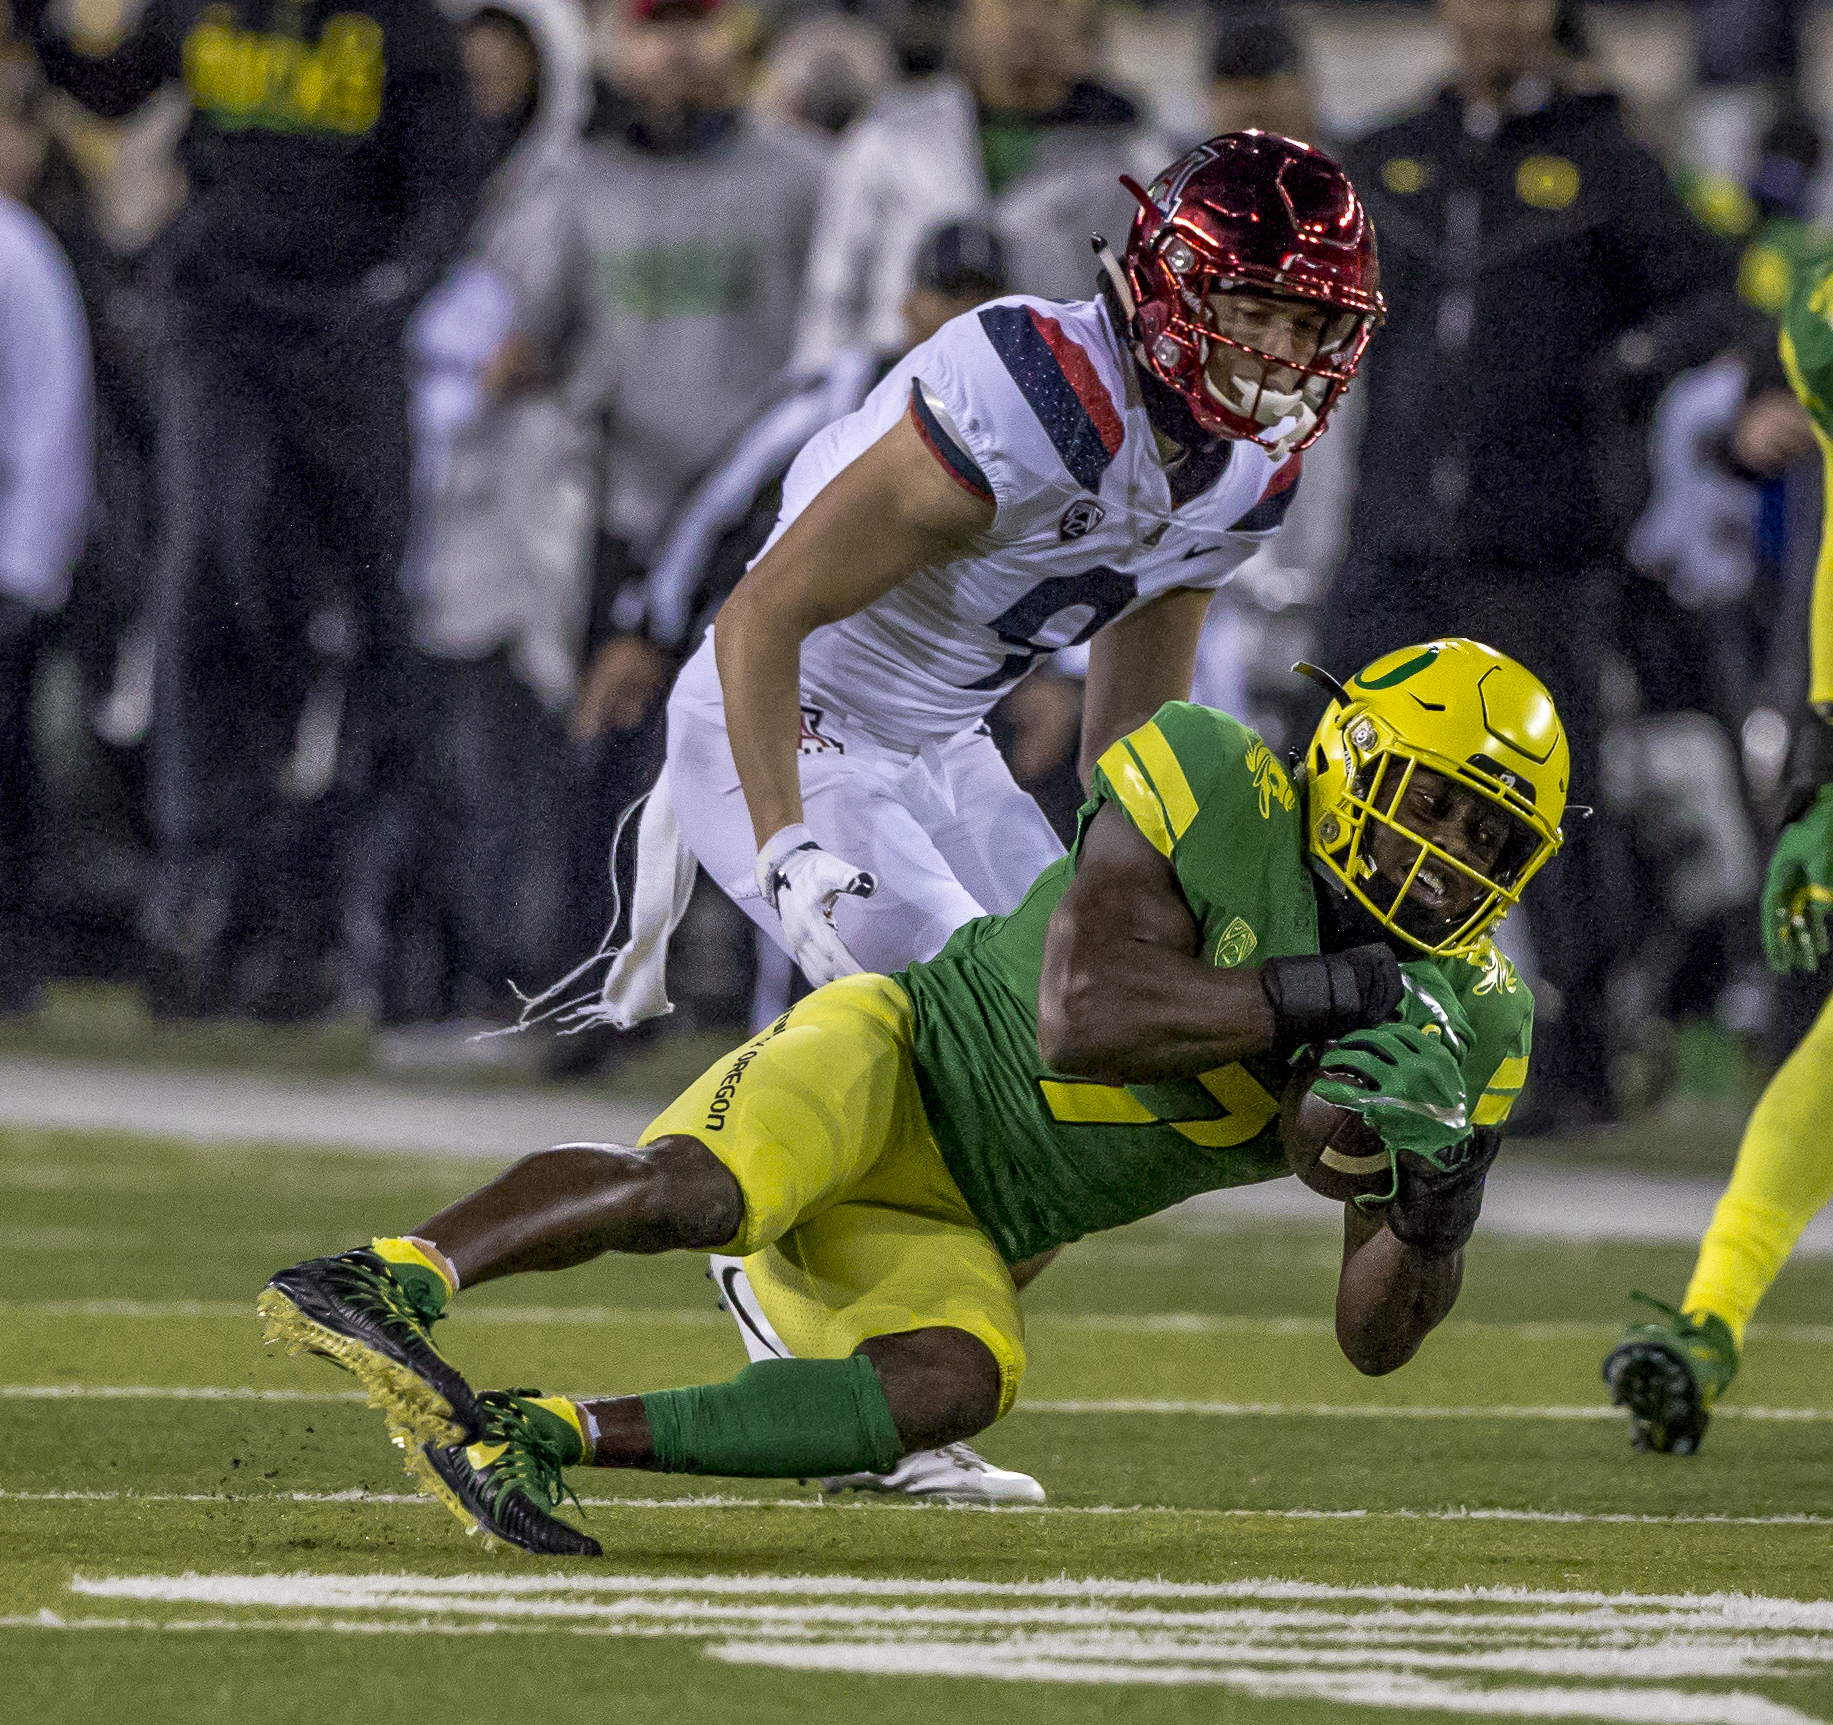 Oregon safety Ugochukwu Amadi (#7) intercepts a pass at the end of the second quarter. The Oregon Ducks lead the Arizona Wildcats 28 to 21 at the end of the first half at Autzen Stadium on Saturday, November 18, 2017. Photo by Ben Lonergan, Oregon News Lab